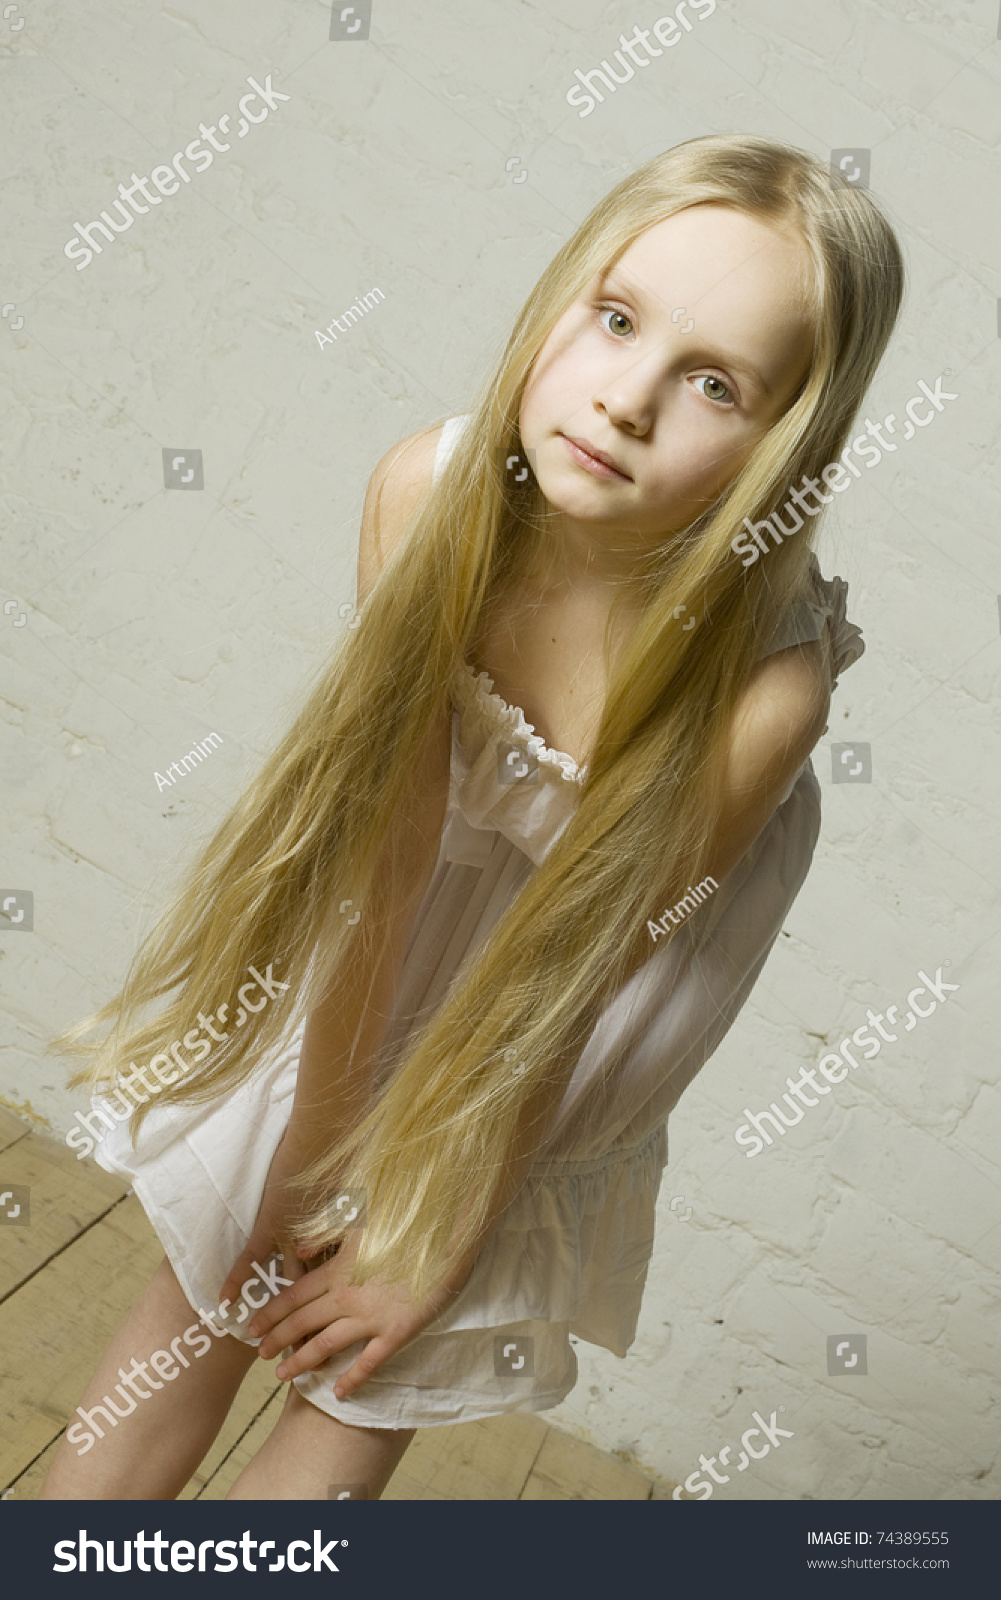 Little Beauty Royalty Free Stock Images: Little Girl Fashion Model Long Blond Stock Photo 74389555